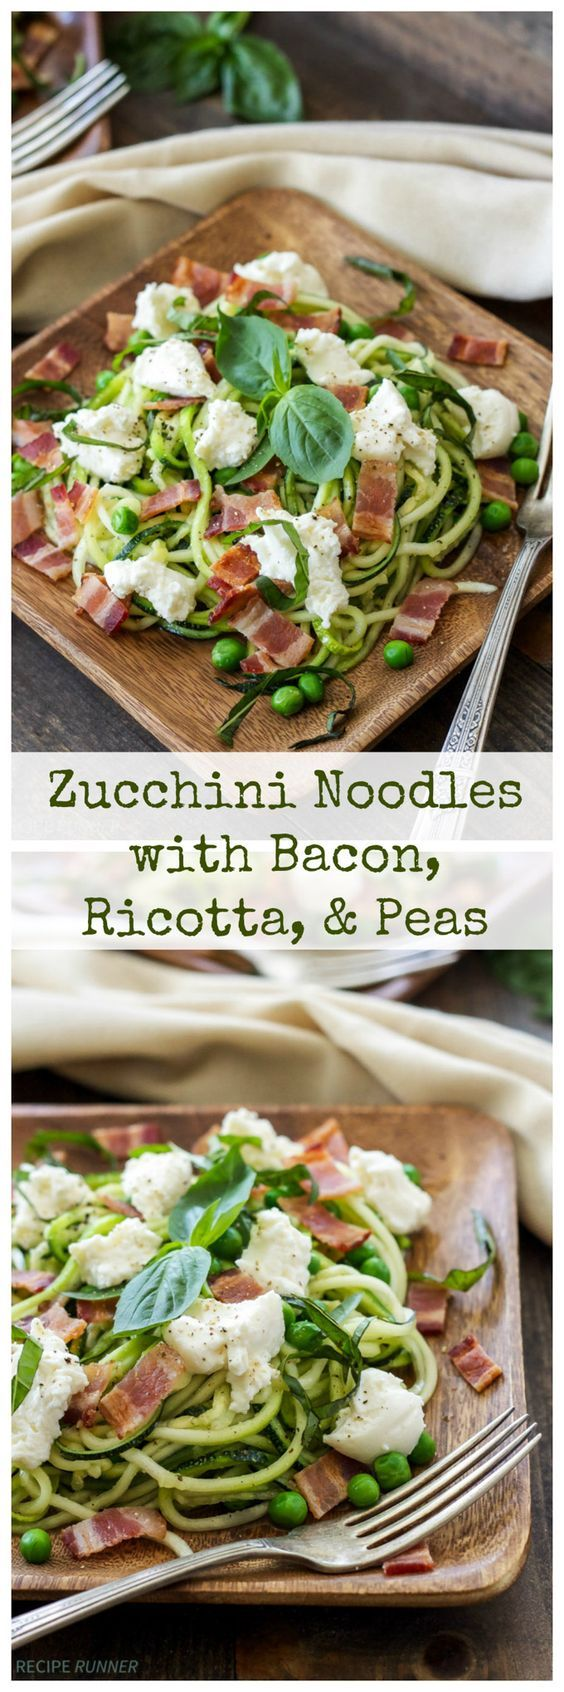 Zucchini Noodles with Bacon Ricotta and Peas